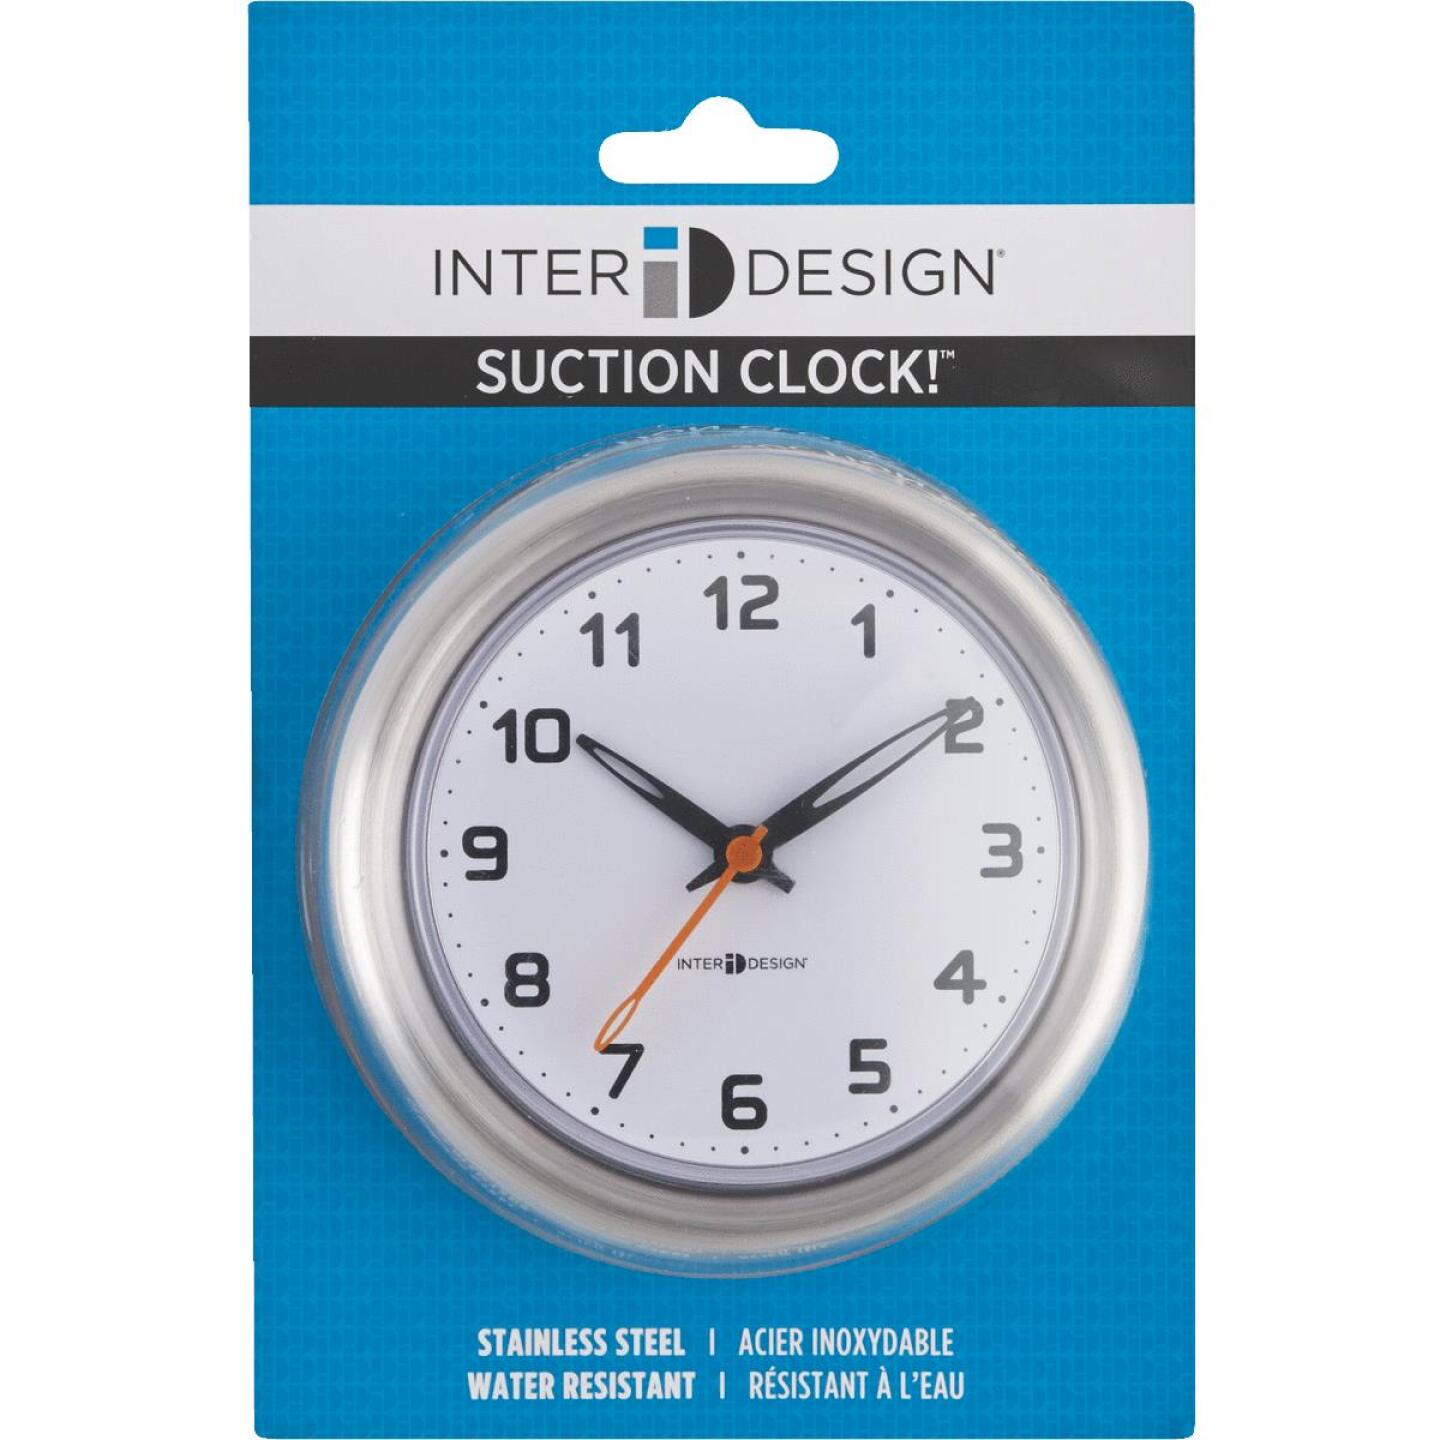 InterDesign Forma Suction Shower Wall Clock Image 2